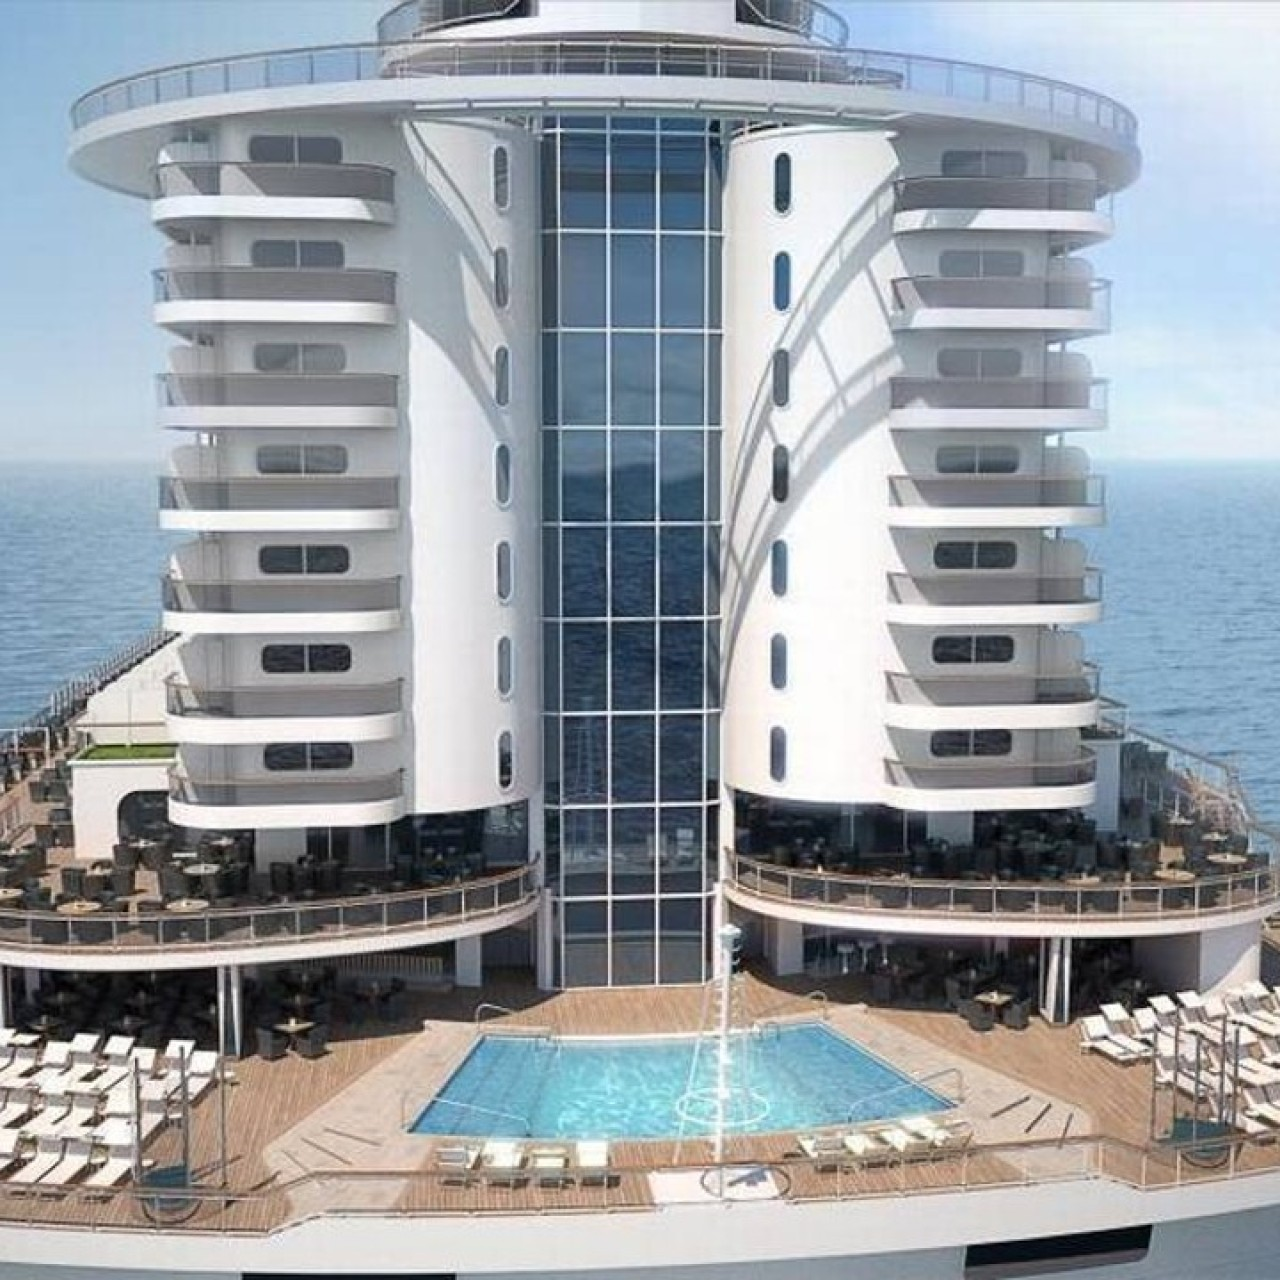 MSC's new cruise ship looks like a condominium – with great views